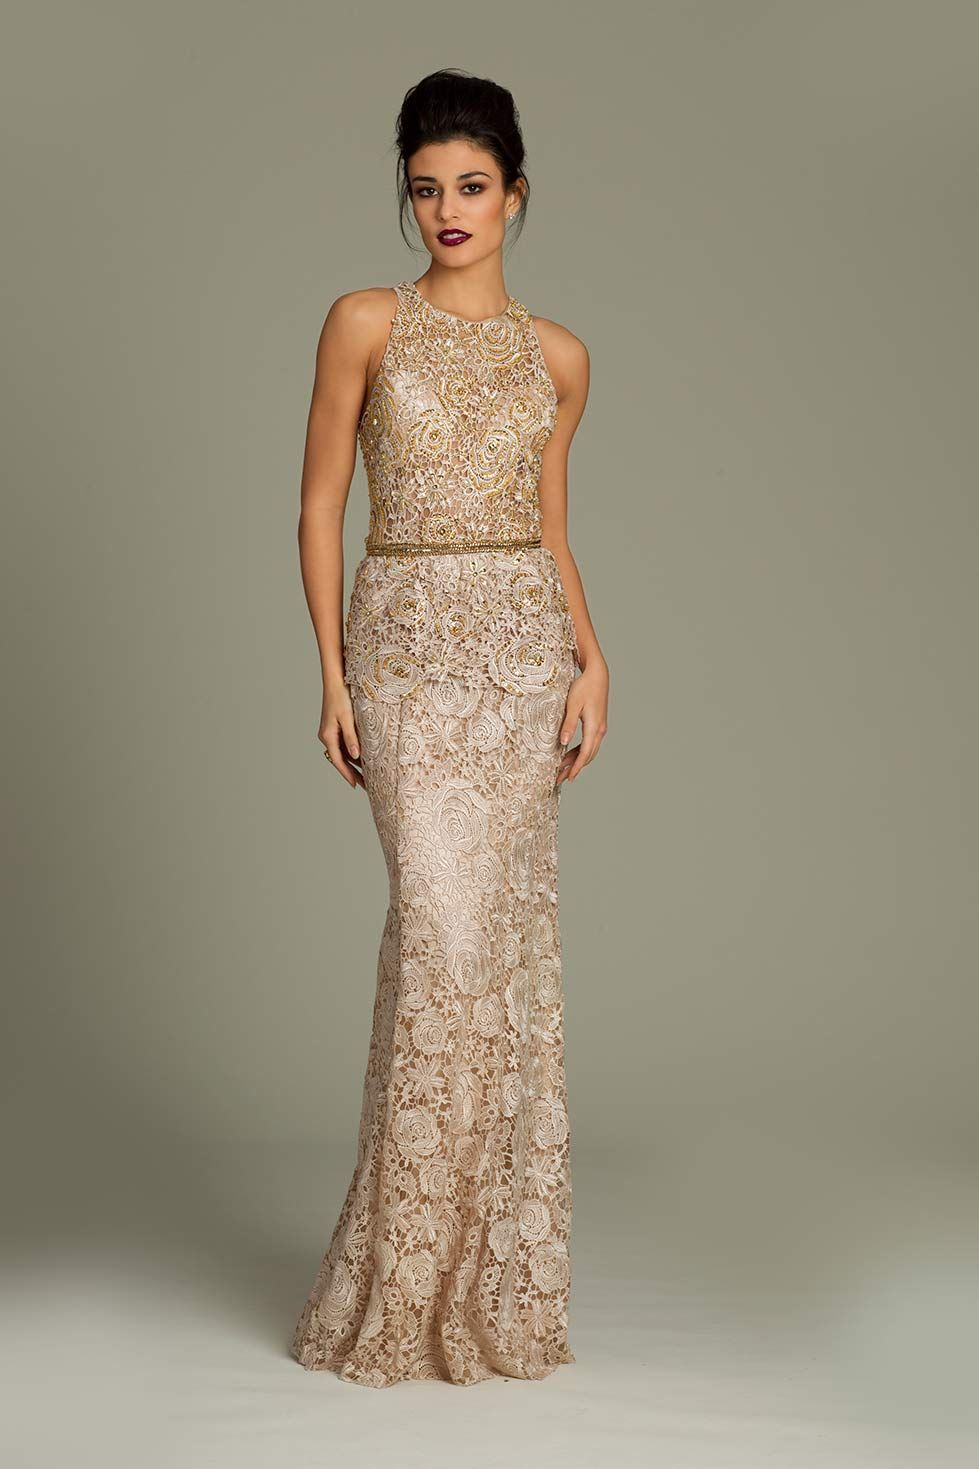 Sleeveless Jovani lace dress | Style | Pinterest | Jovani dresses ...